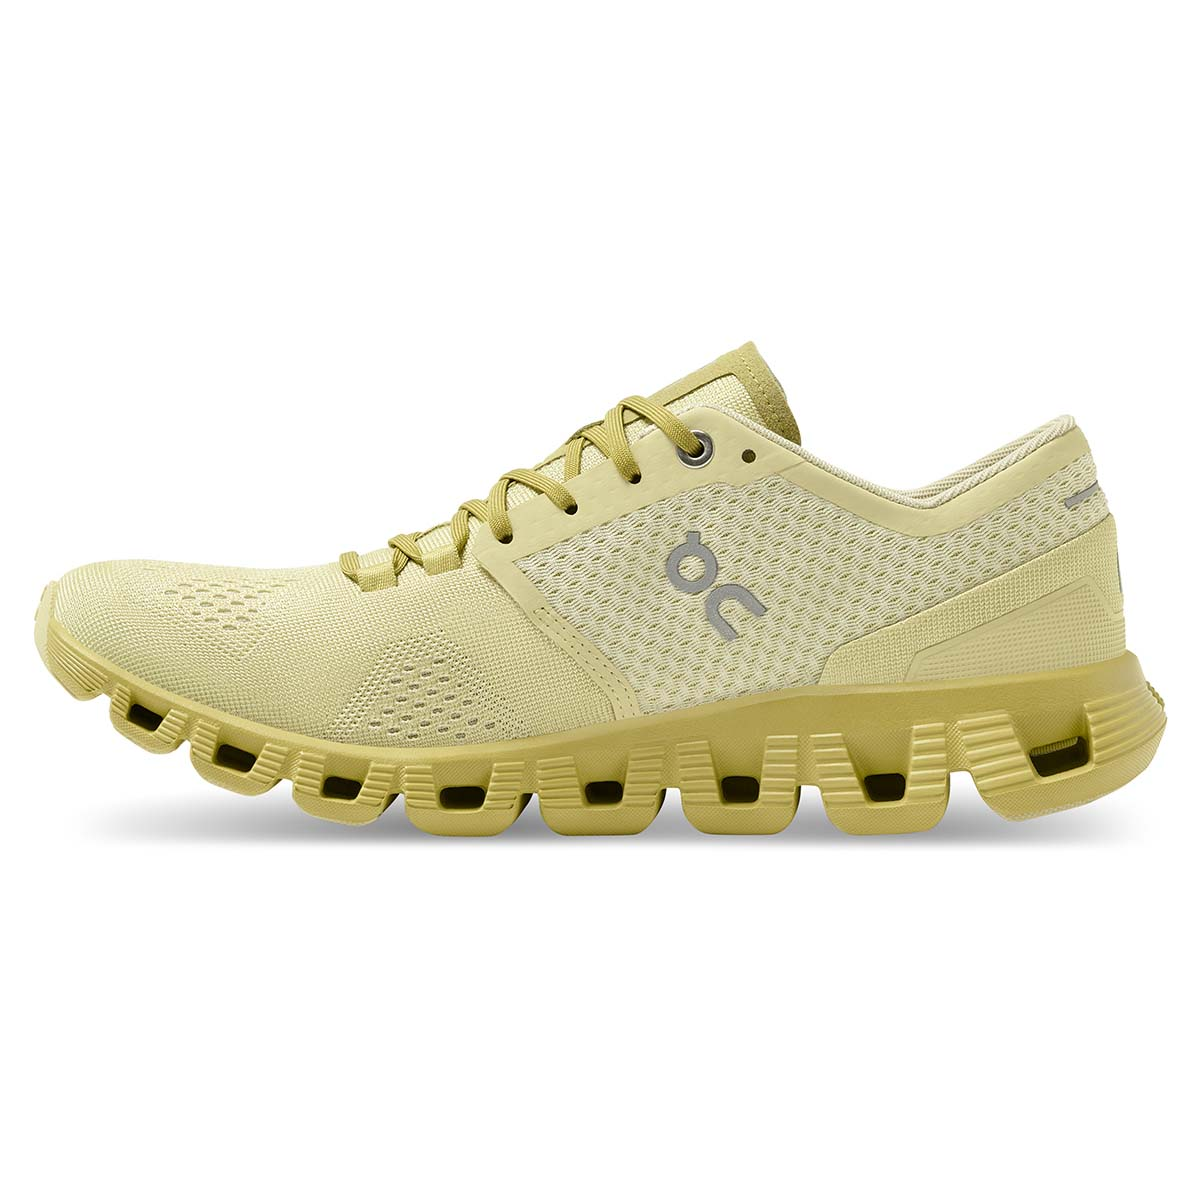 Women's On Cloud X 2.0 Running Shoe - Color: Glade/Citron - Size: 5 - Width: Regular, Glade/Citron, large, image 3